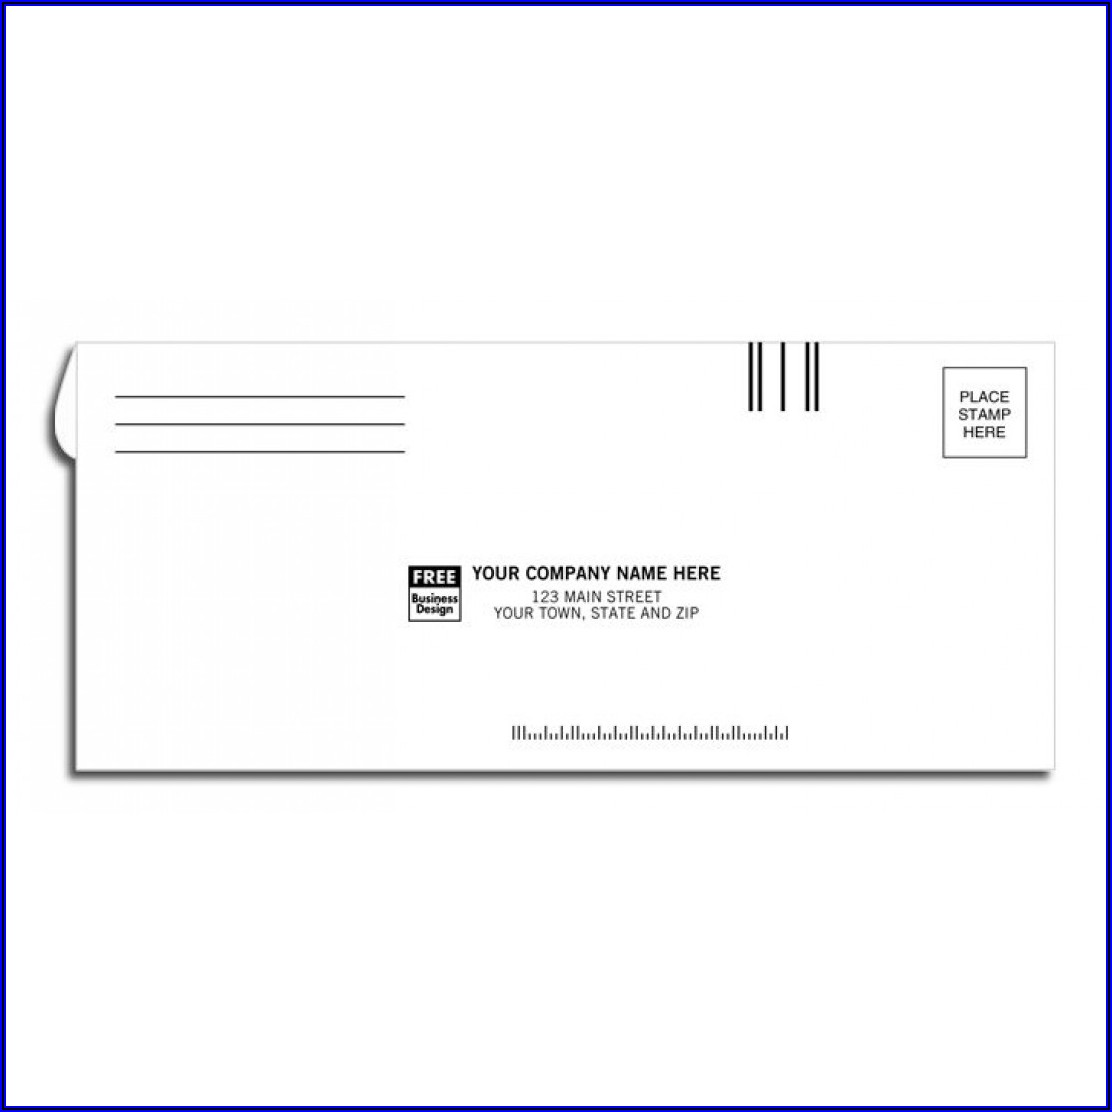 Royal Mail Business Reply Envelope Template